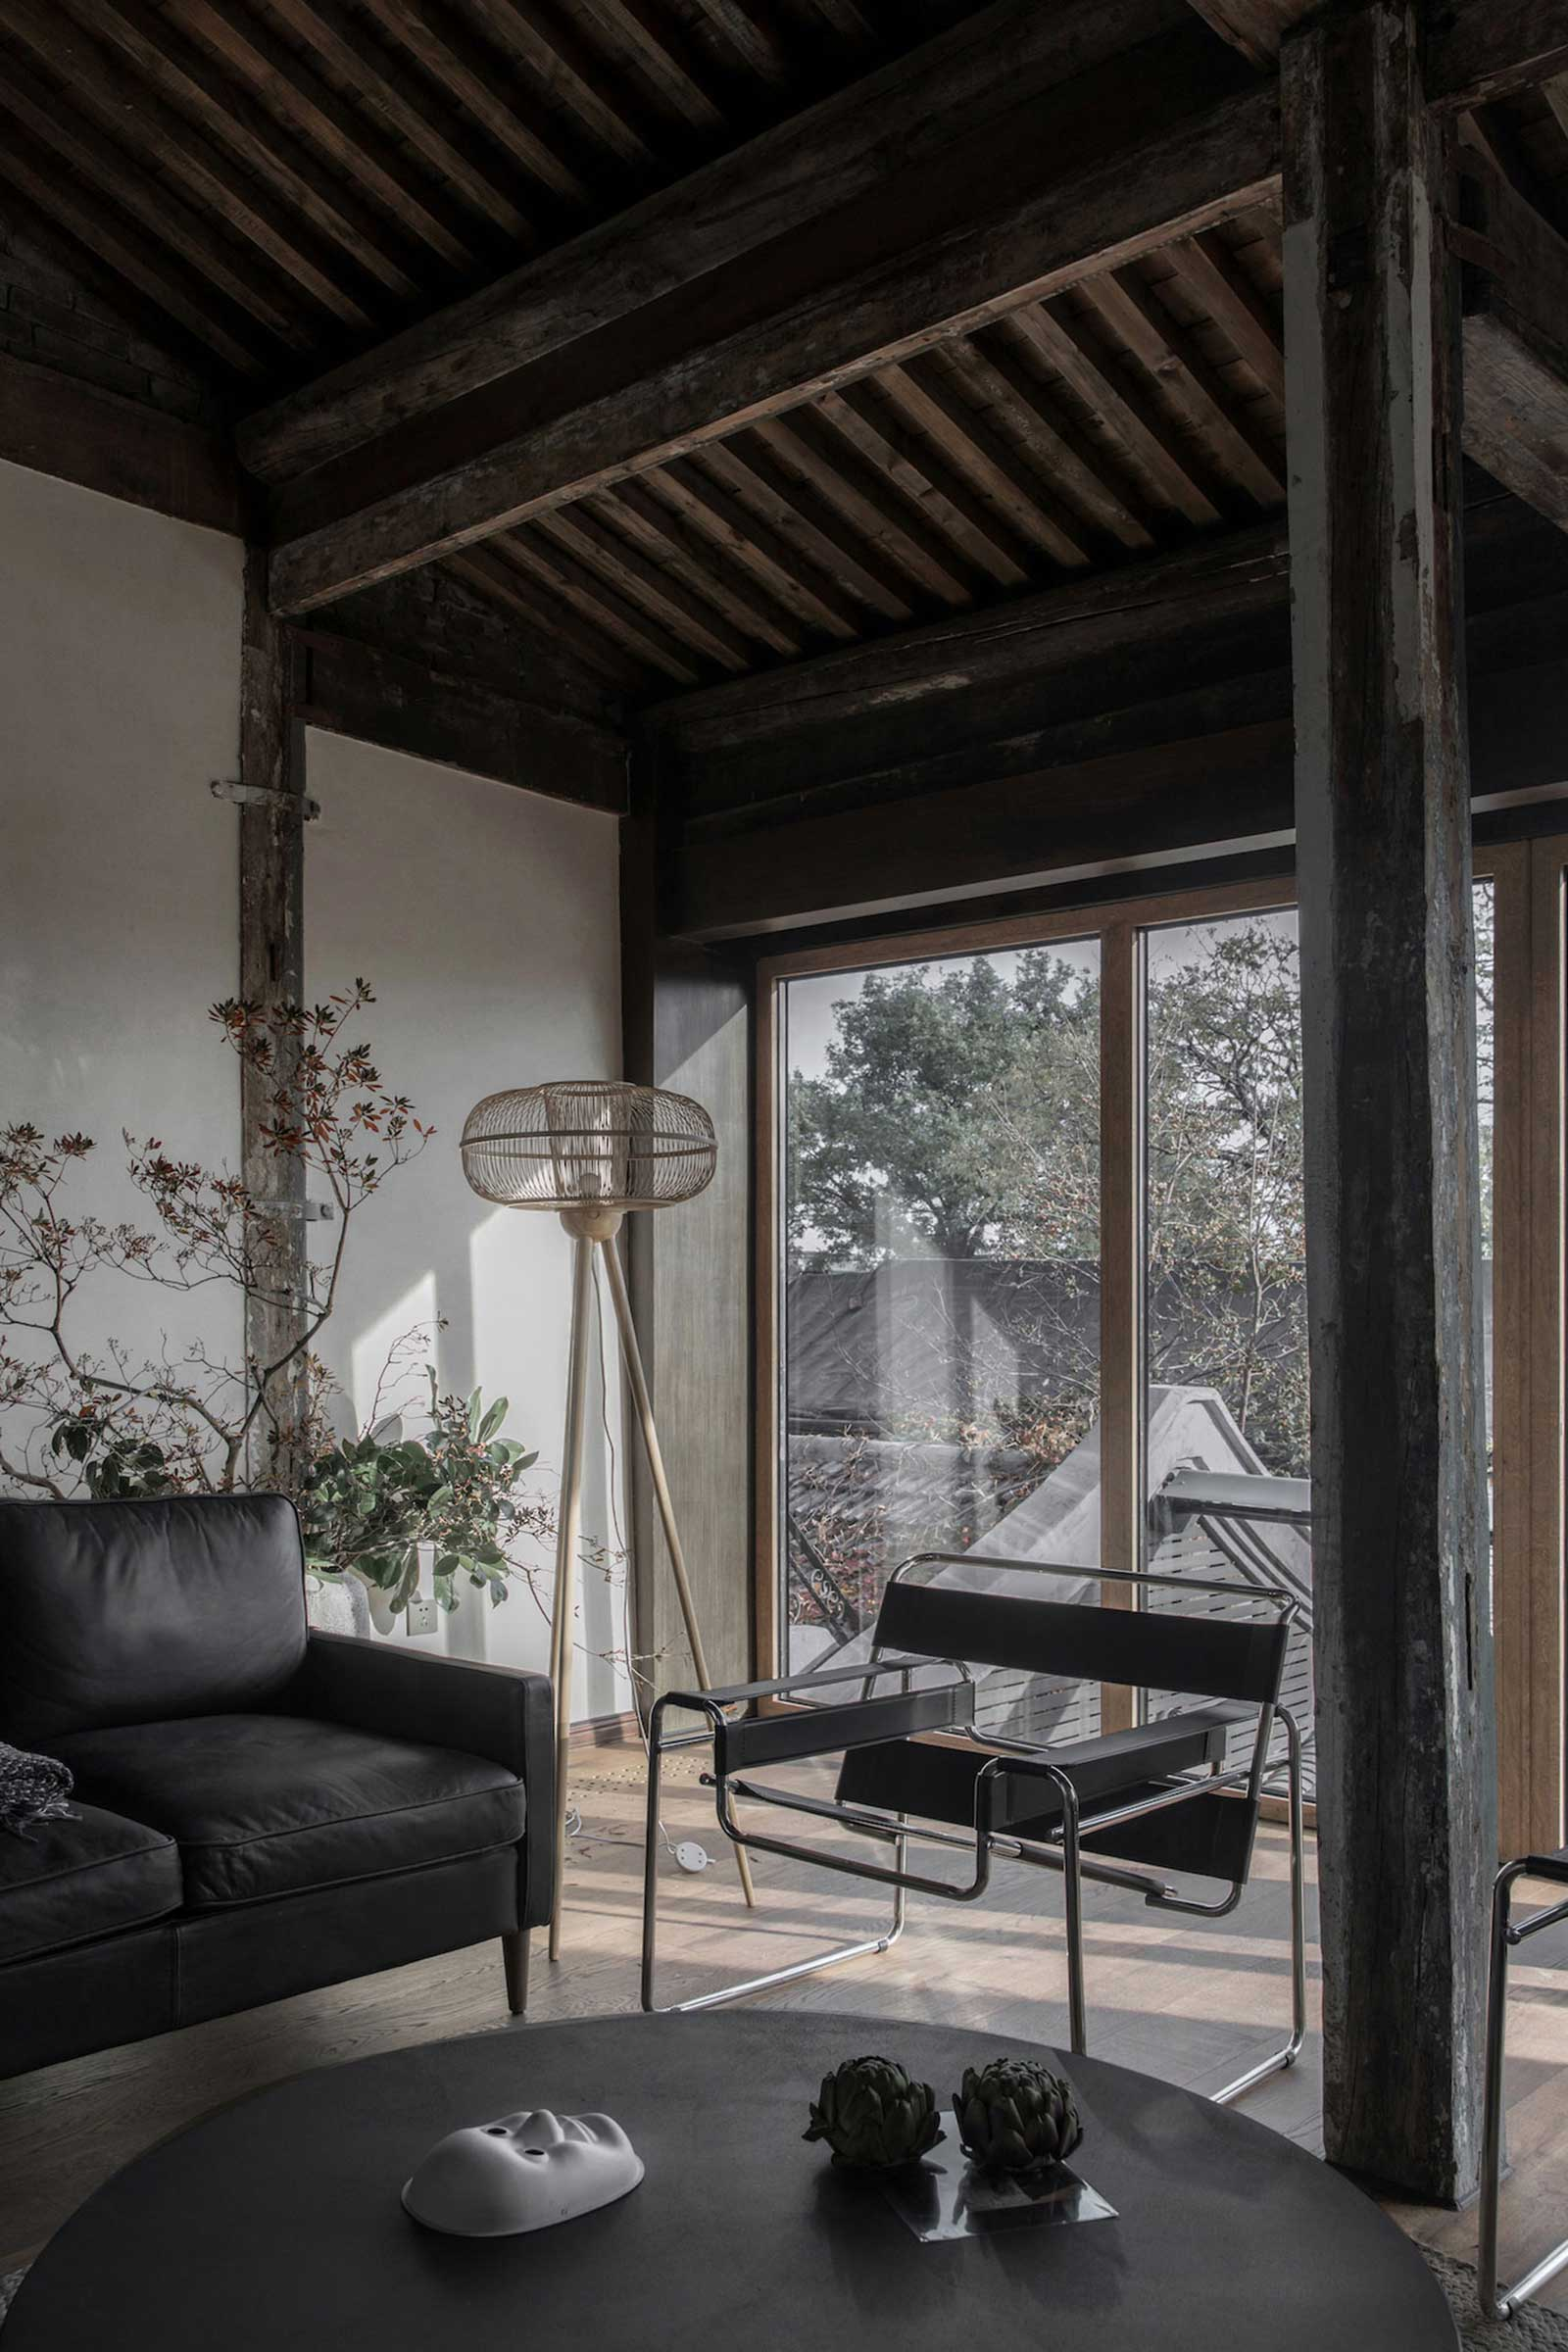 quad-house-ARCHISTRY-nolan-chao-27-private-room-on-second-floor.jpg